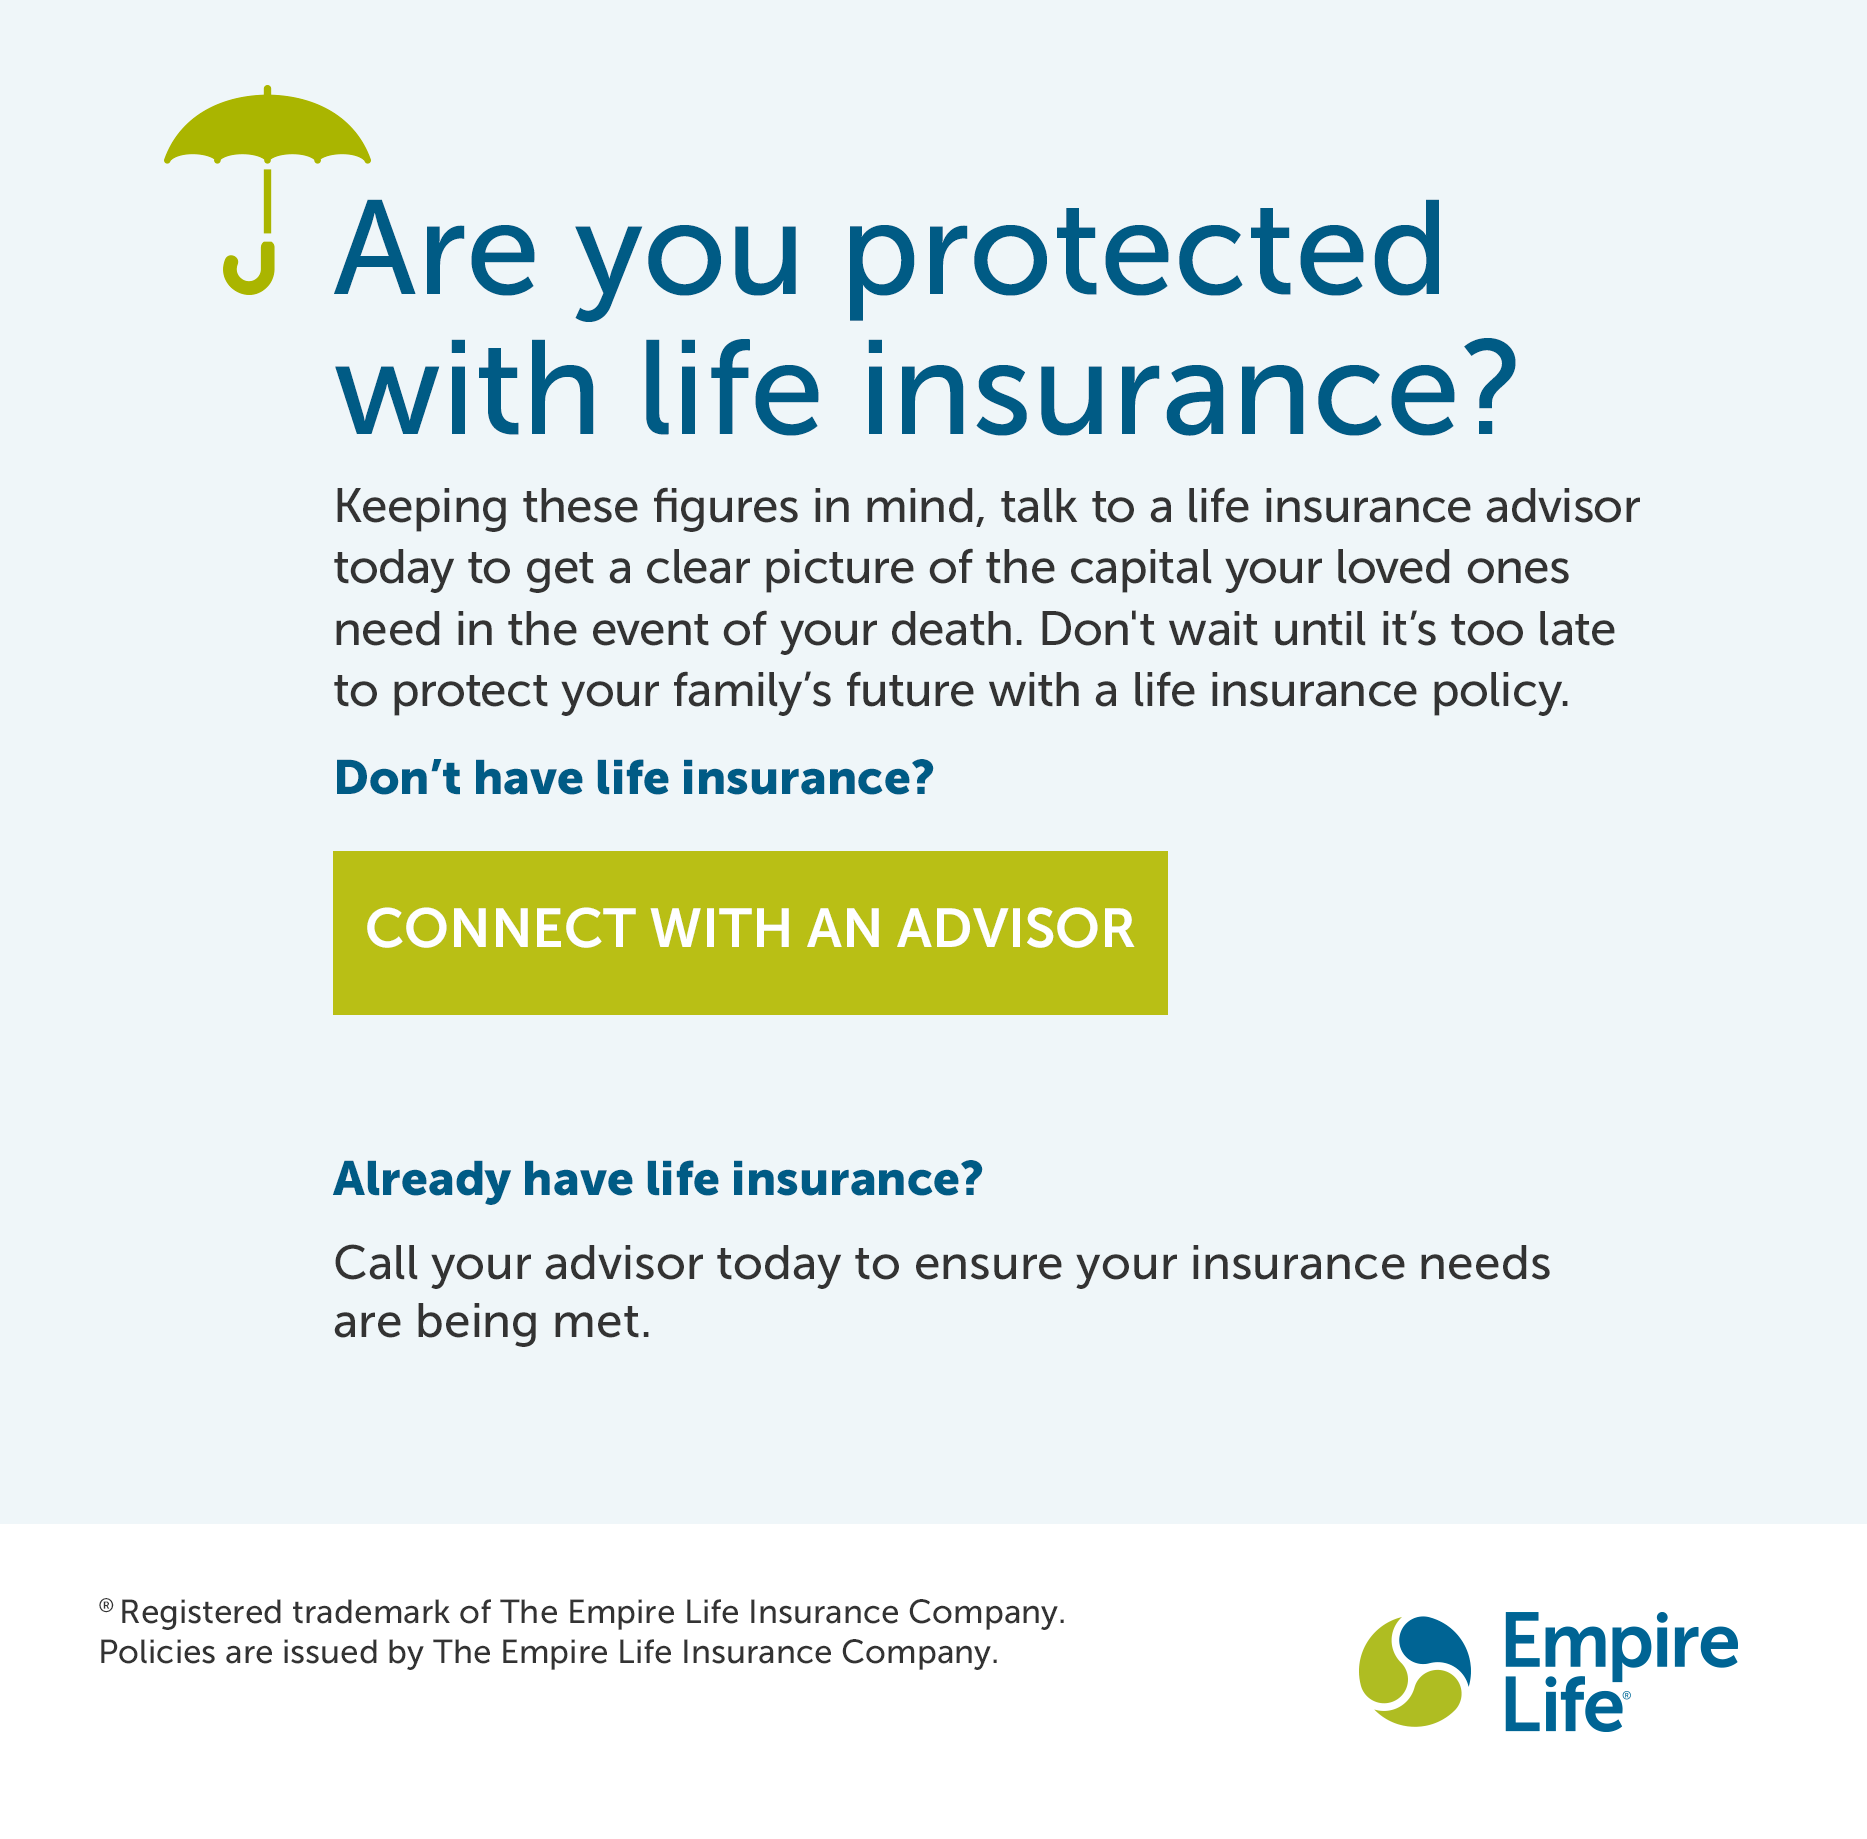 Are you protected with life insurance? Connect with an advisor button